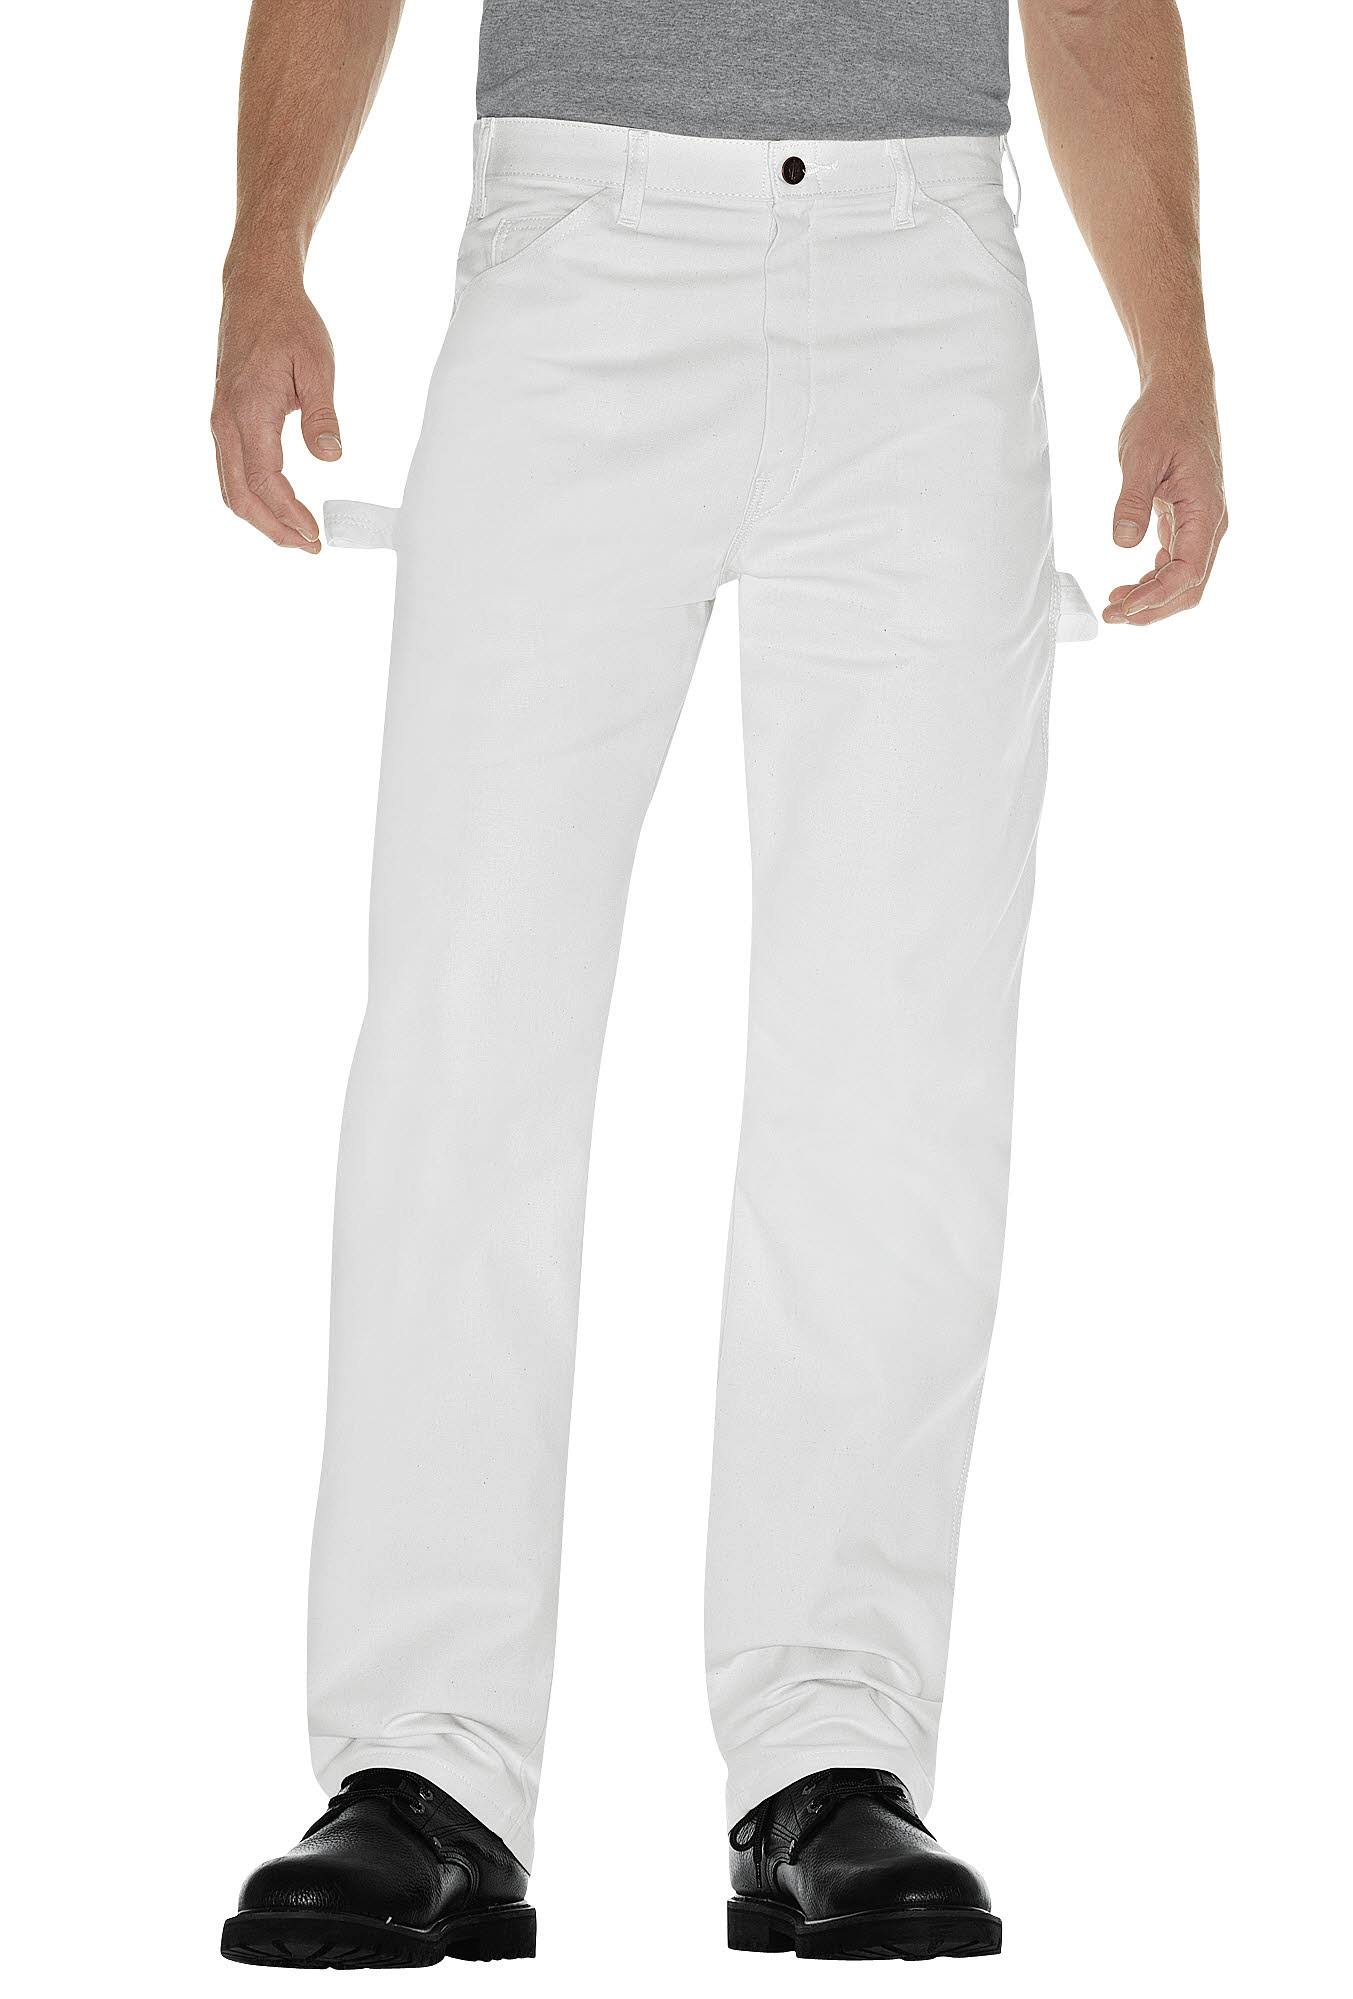 Dickies Painter's Pants - White